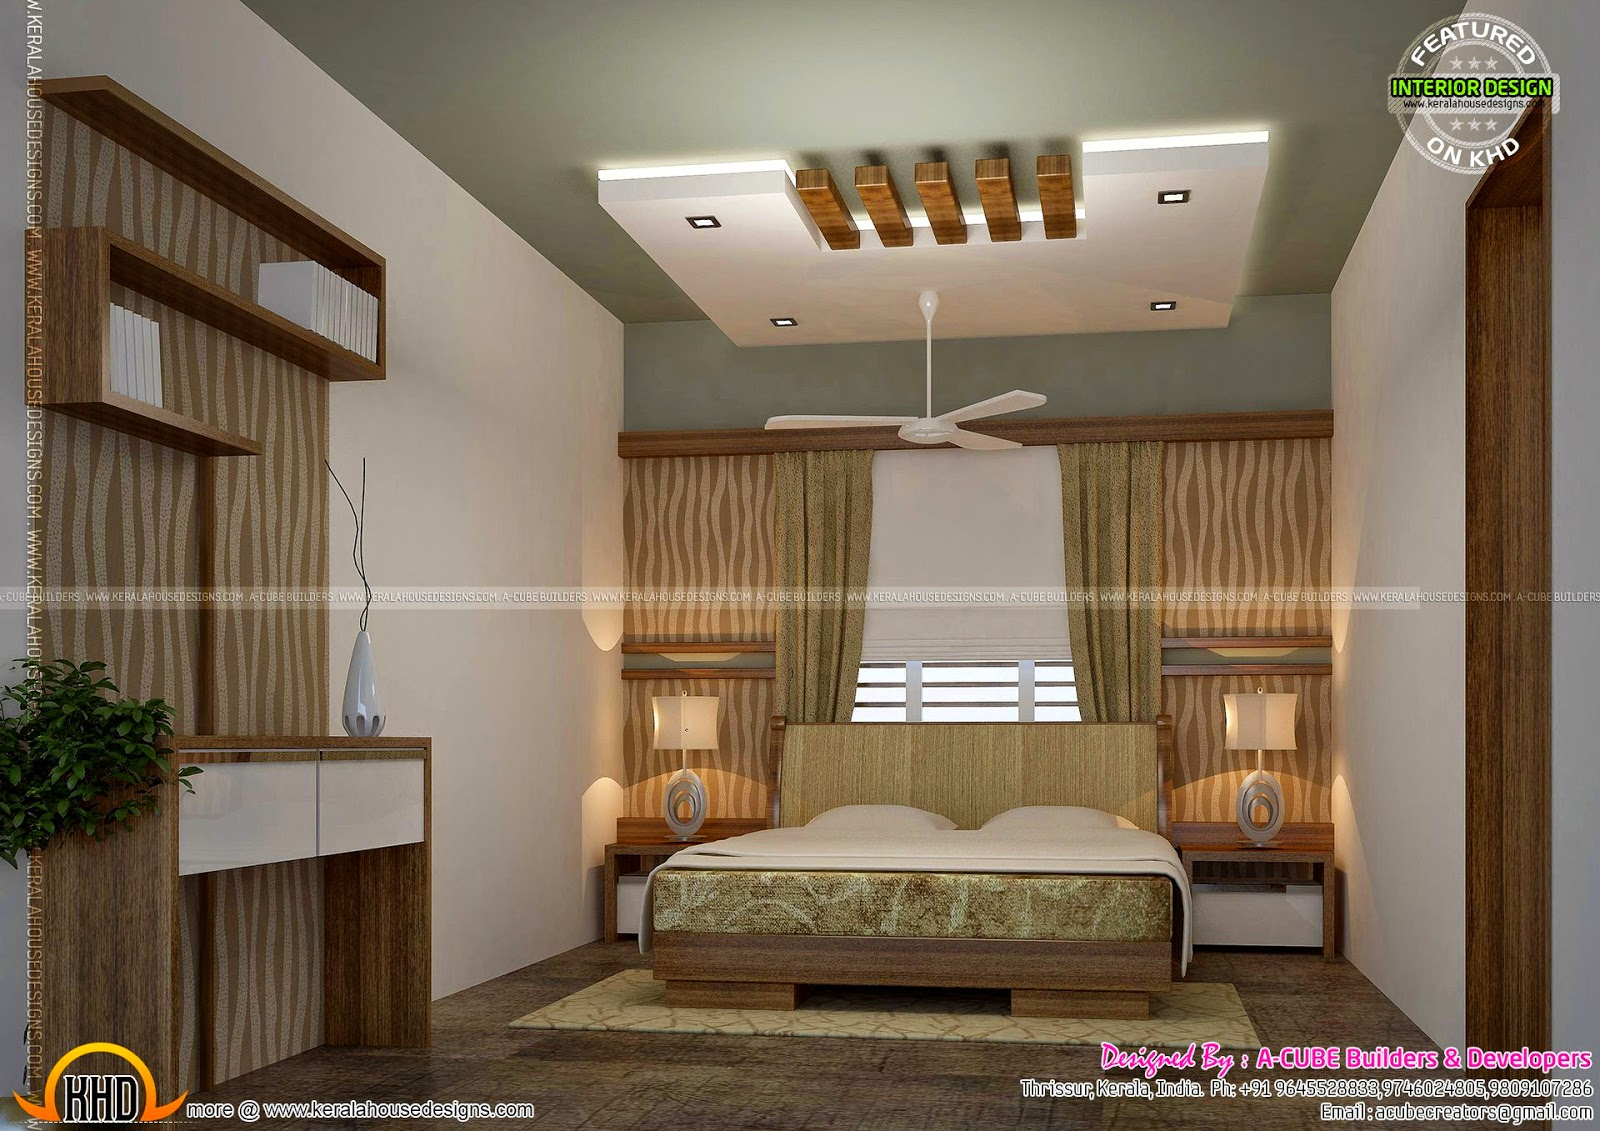 Kerala interior design ideas kerala home design and for Kerala interior designs